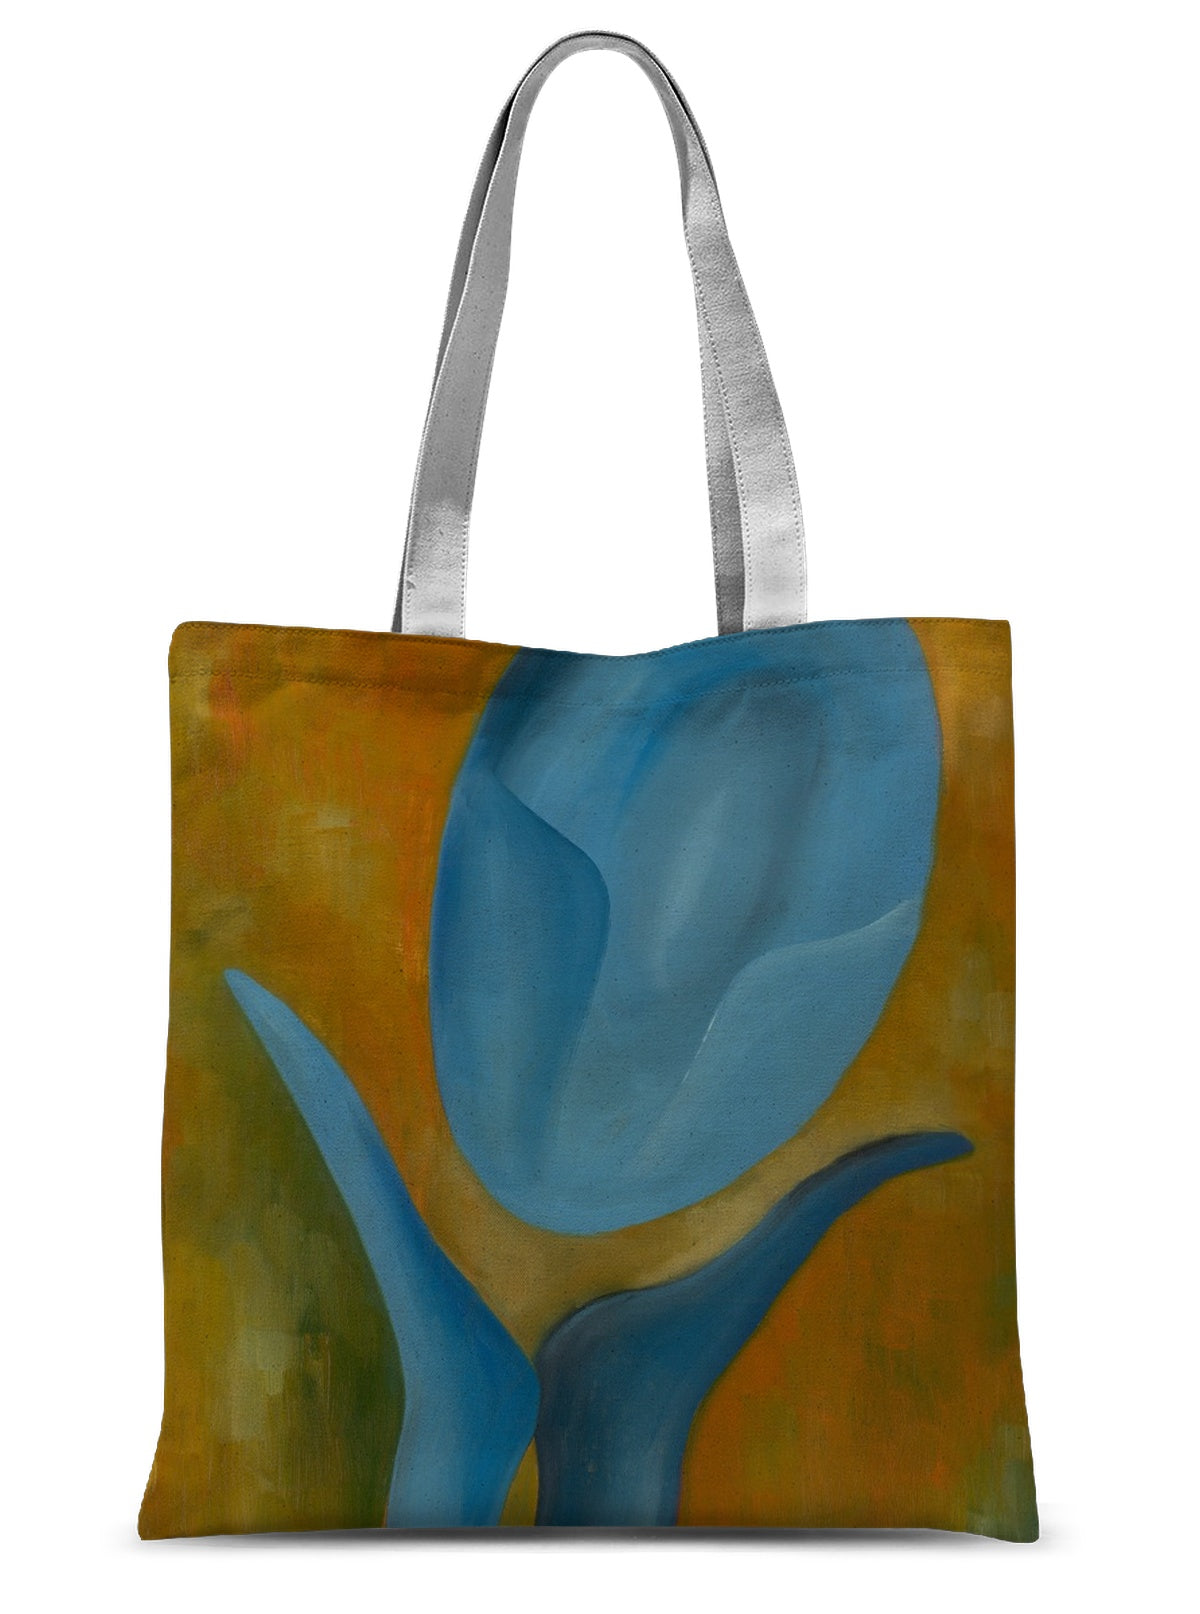 Femme Bleue 'Avoir de L'admiration' Sublimation Tote Bag